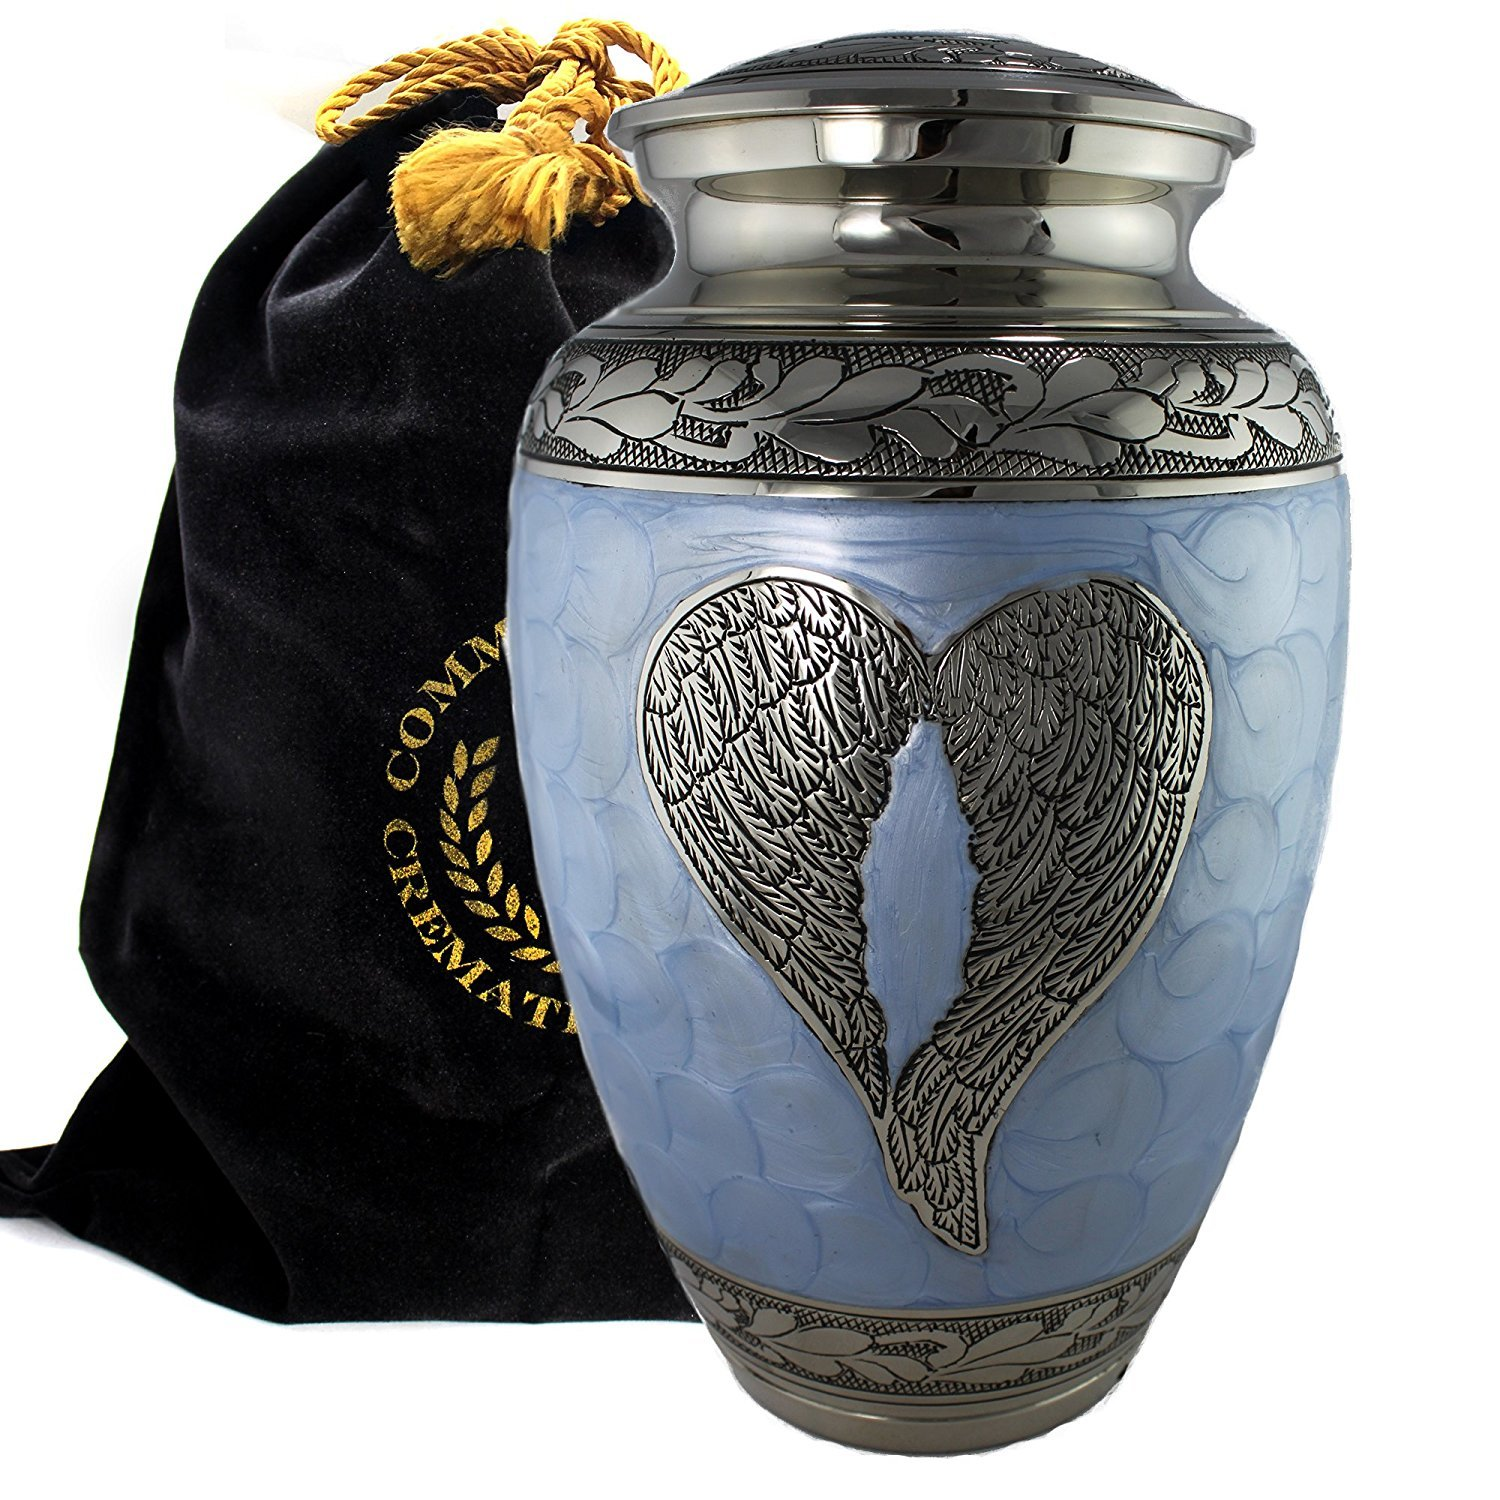 Loving Angel Wings Blue and Silver Burial or Funeral Adult Cremation Urn for Human Ashes - Adult, Large